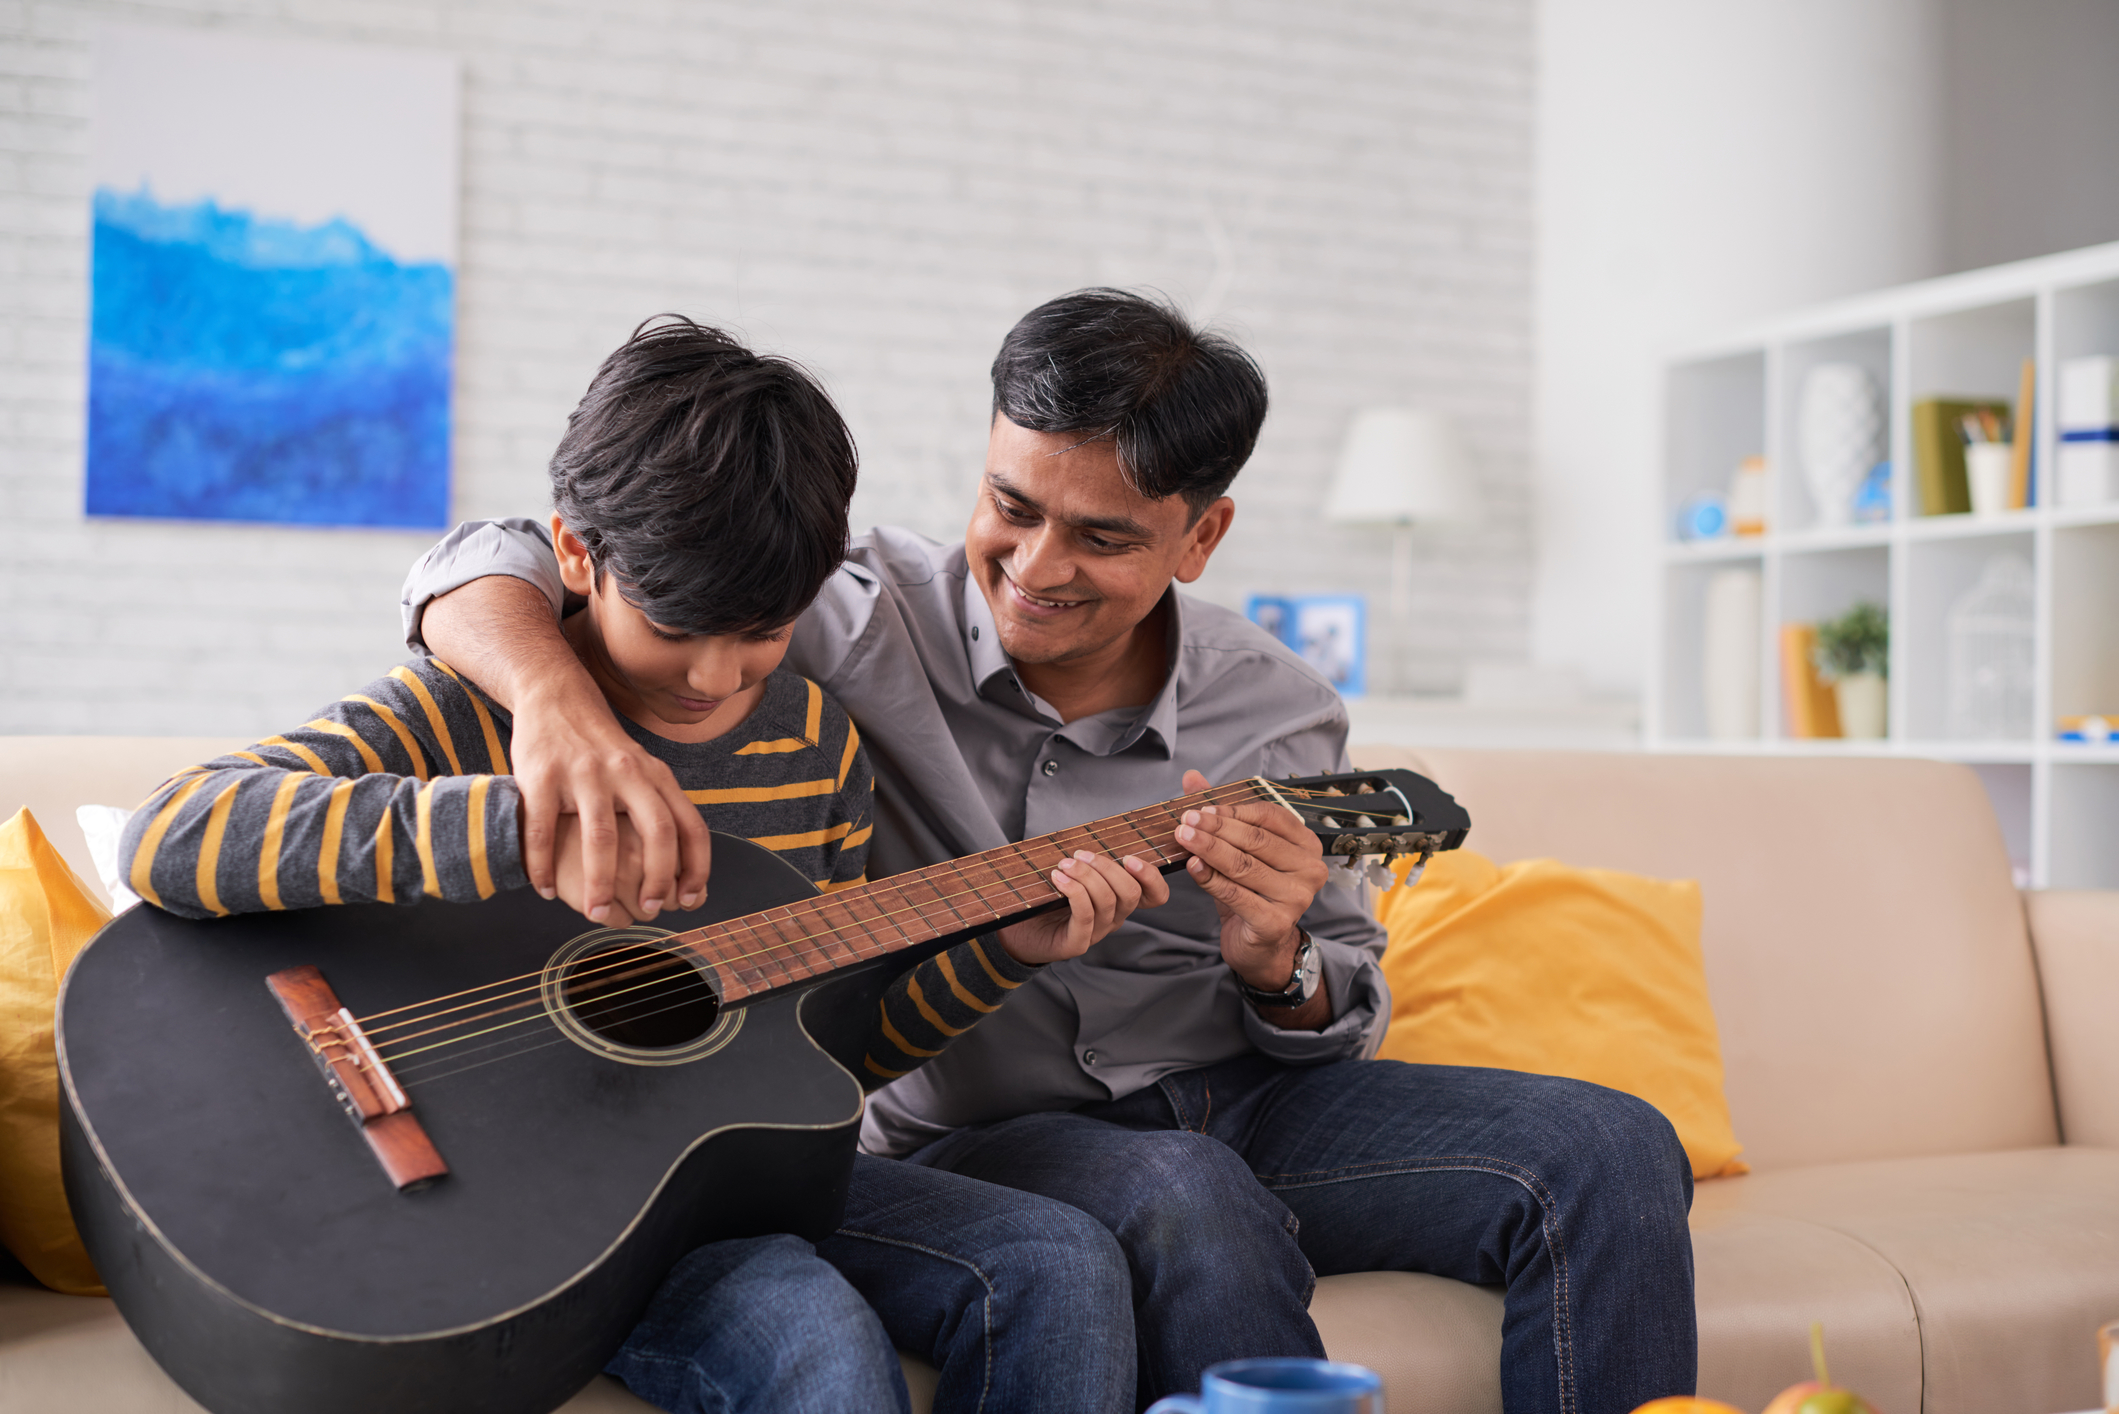 Free Guide Lg Guitar Music School Amstelveen String Tuning Diagram Get A To Teach The Basics Of Your Children